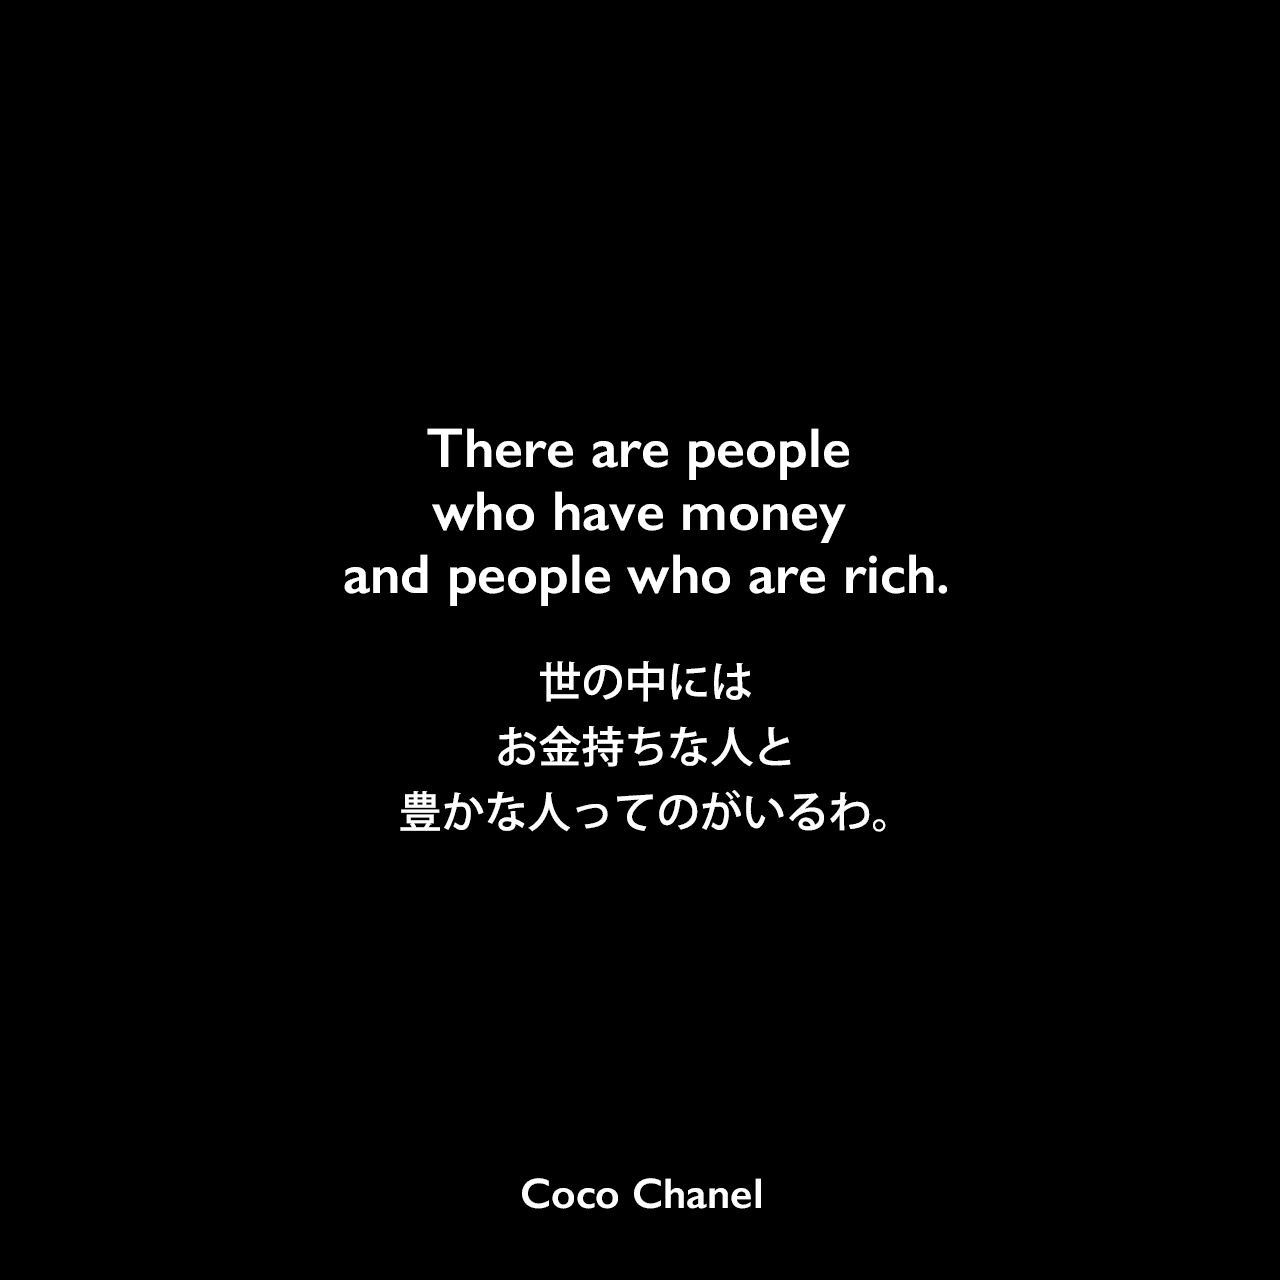 There are people who have money and people who are rich.世の中には、お金持ちな人と豊かな人ってのがいるわ。Coco Chanel